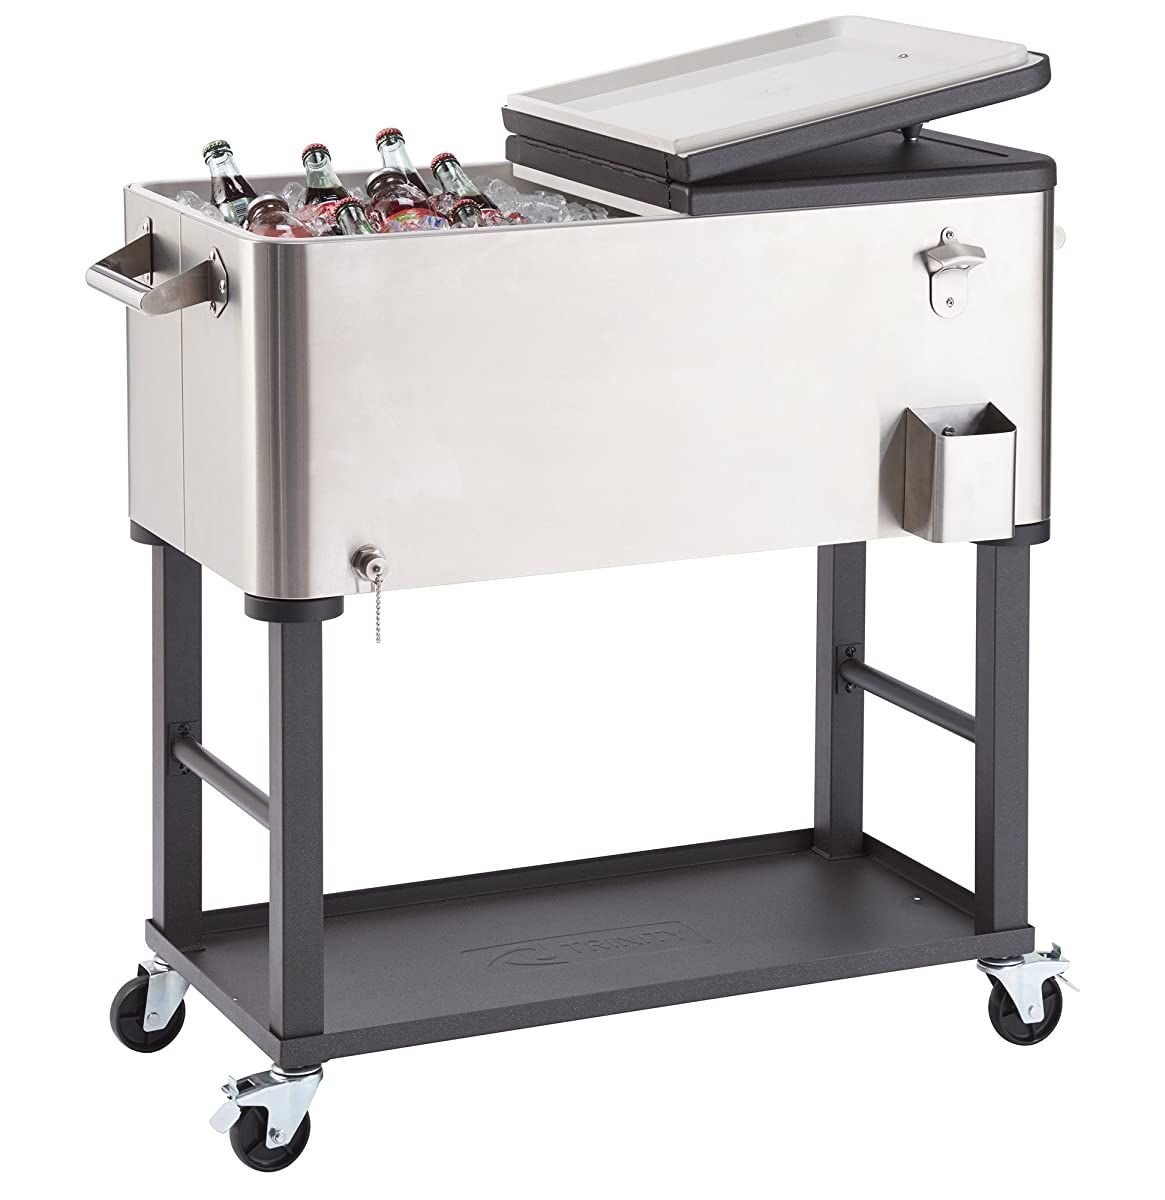 TRINITY TXK-0805 Outdoor Cooler, 100 quart, Stainless Steel